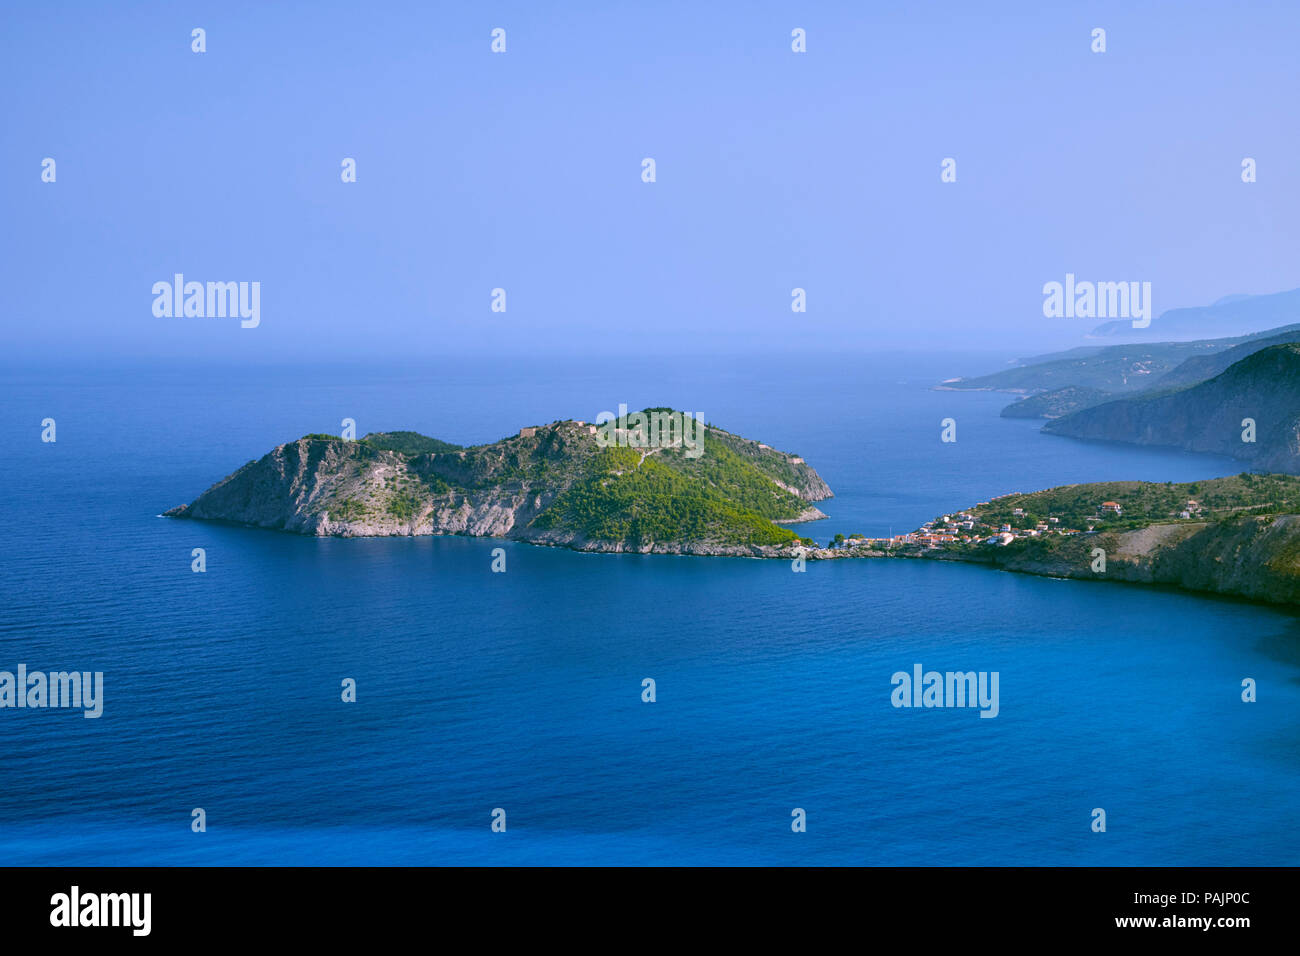 Village of Assos and its castle on the Gulf of Myrtos.  Cephalonia, Ionian Islands, Greece. - Stock Image